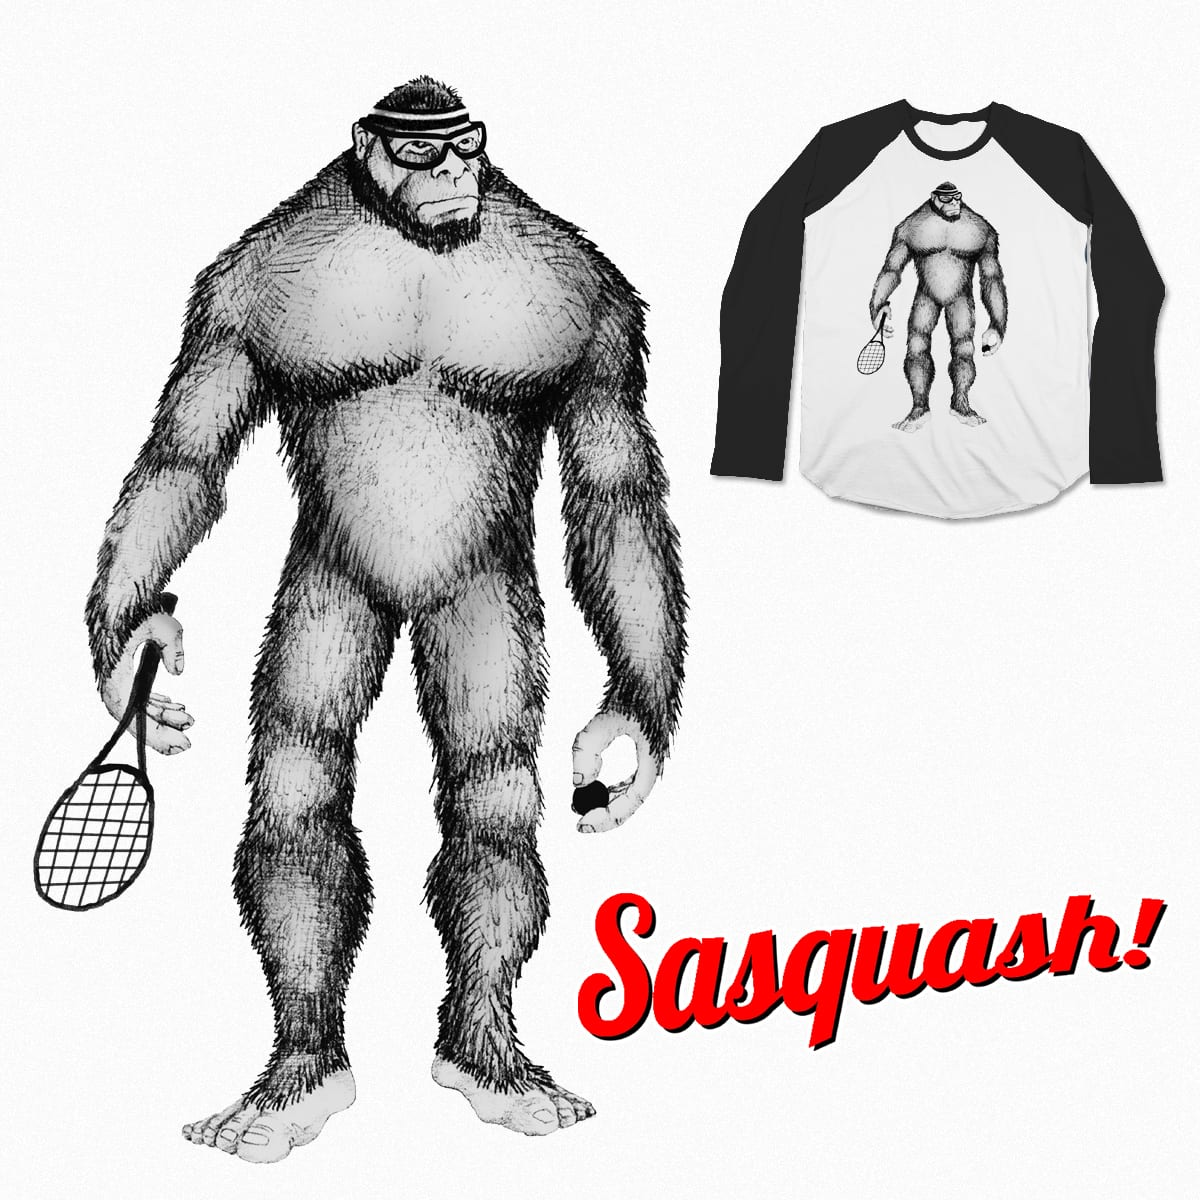 Sasquash! by mattographer on Threadless